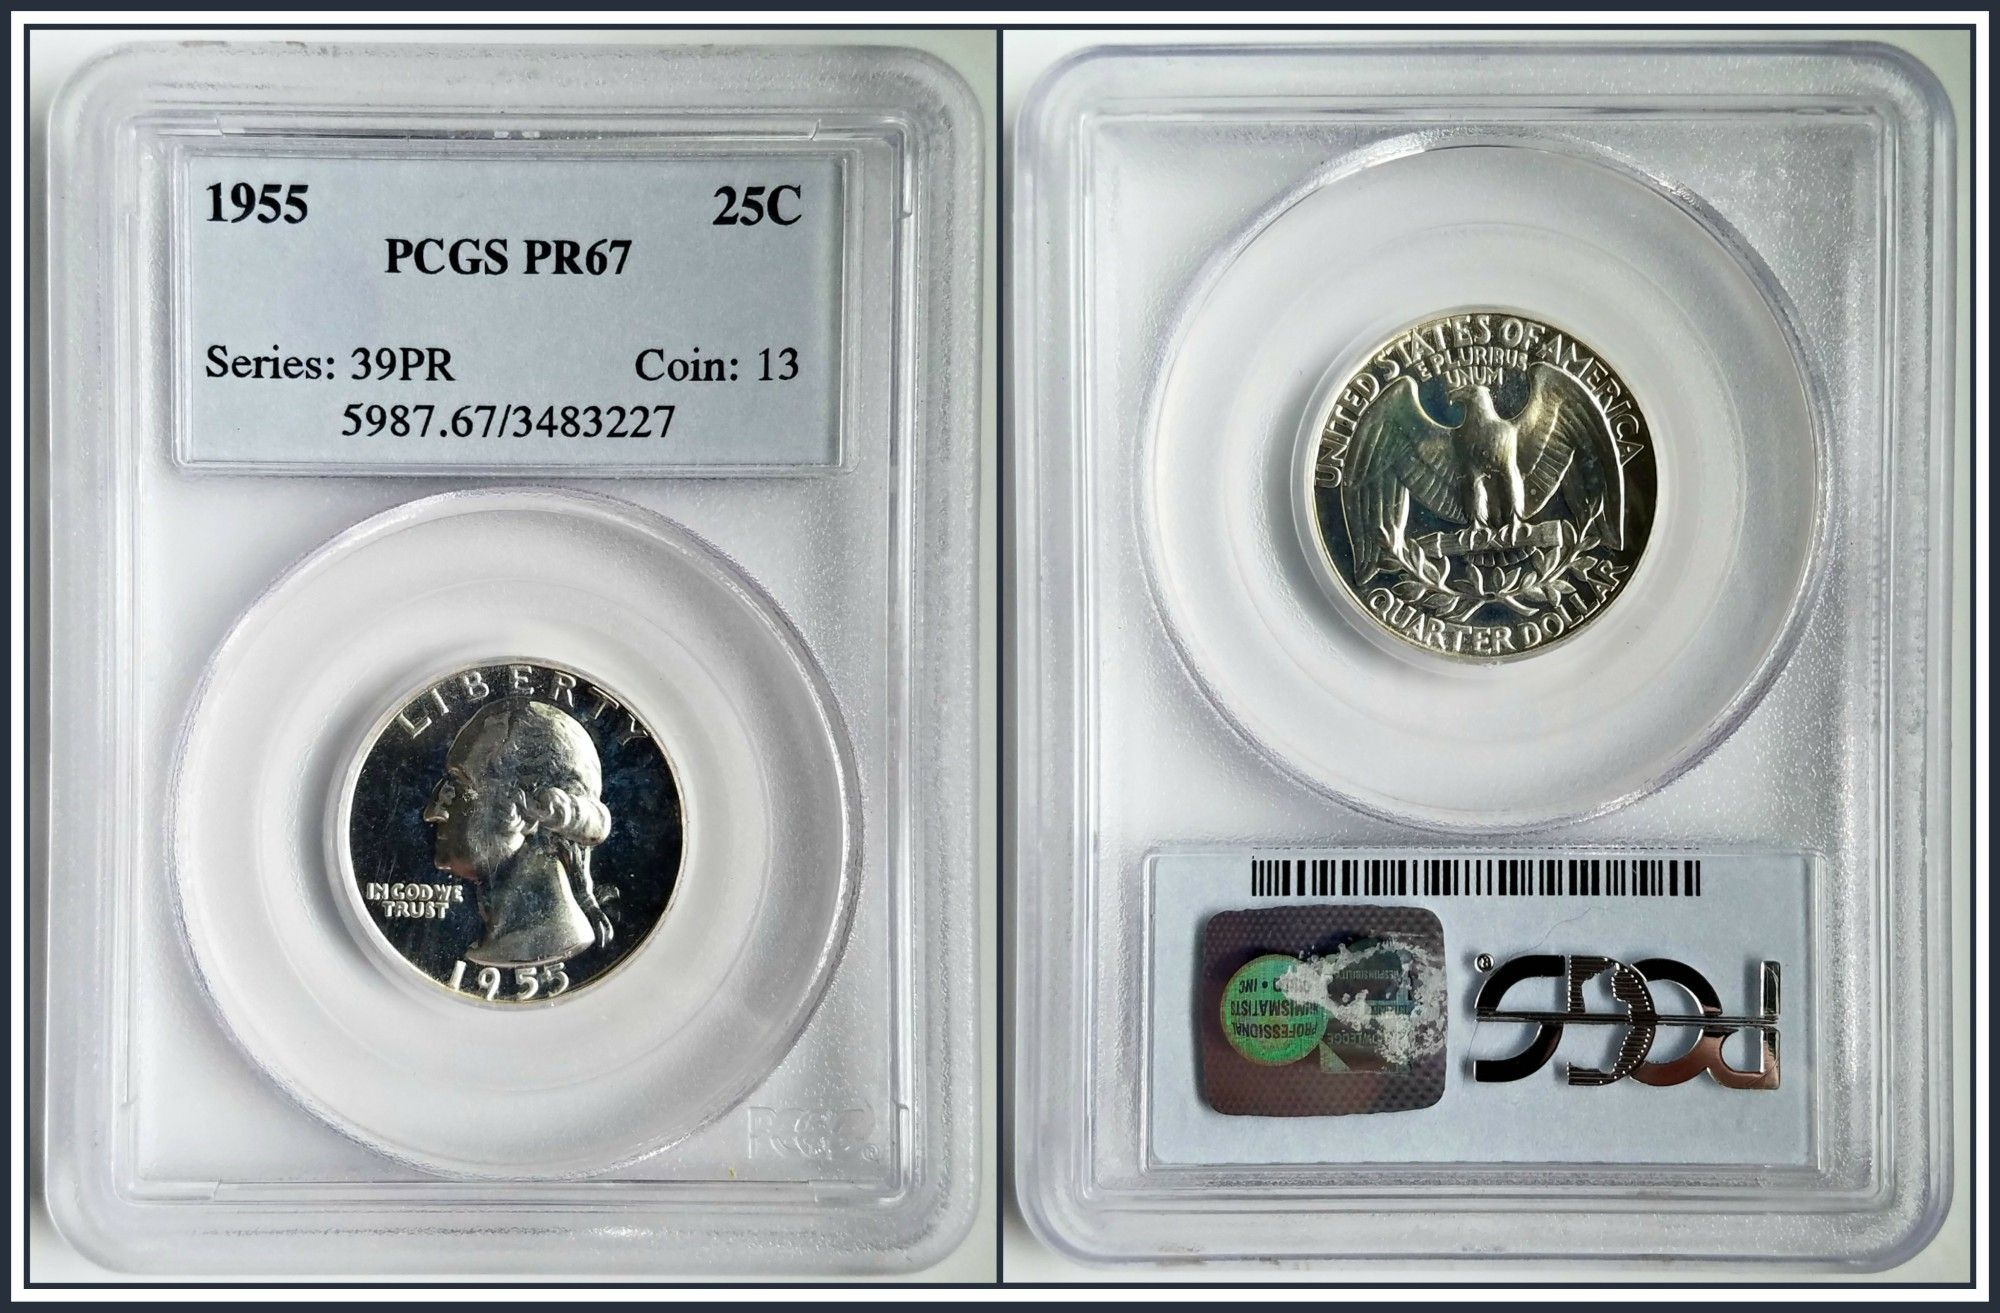 PR67RD 1964 RD LINCOLN PENNY PCGS GRADED 1C PROOF COIN LIBERTY US PR67 ONE CENT